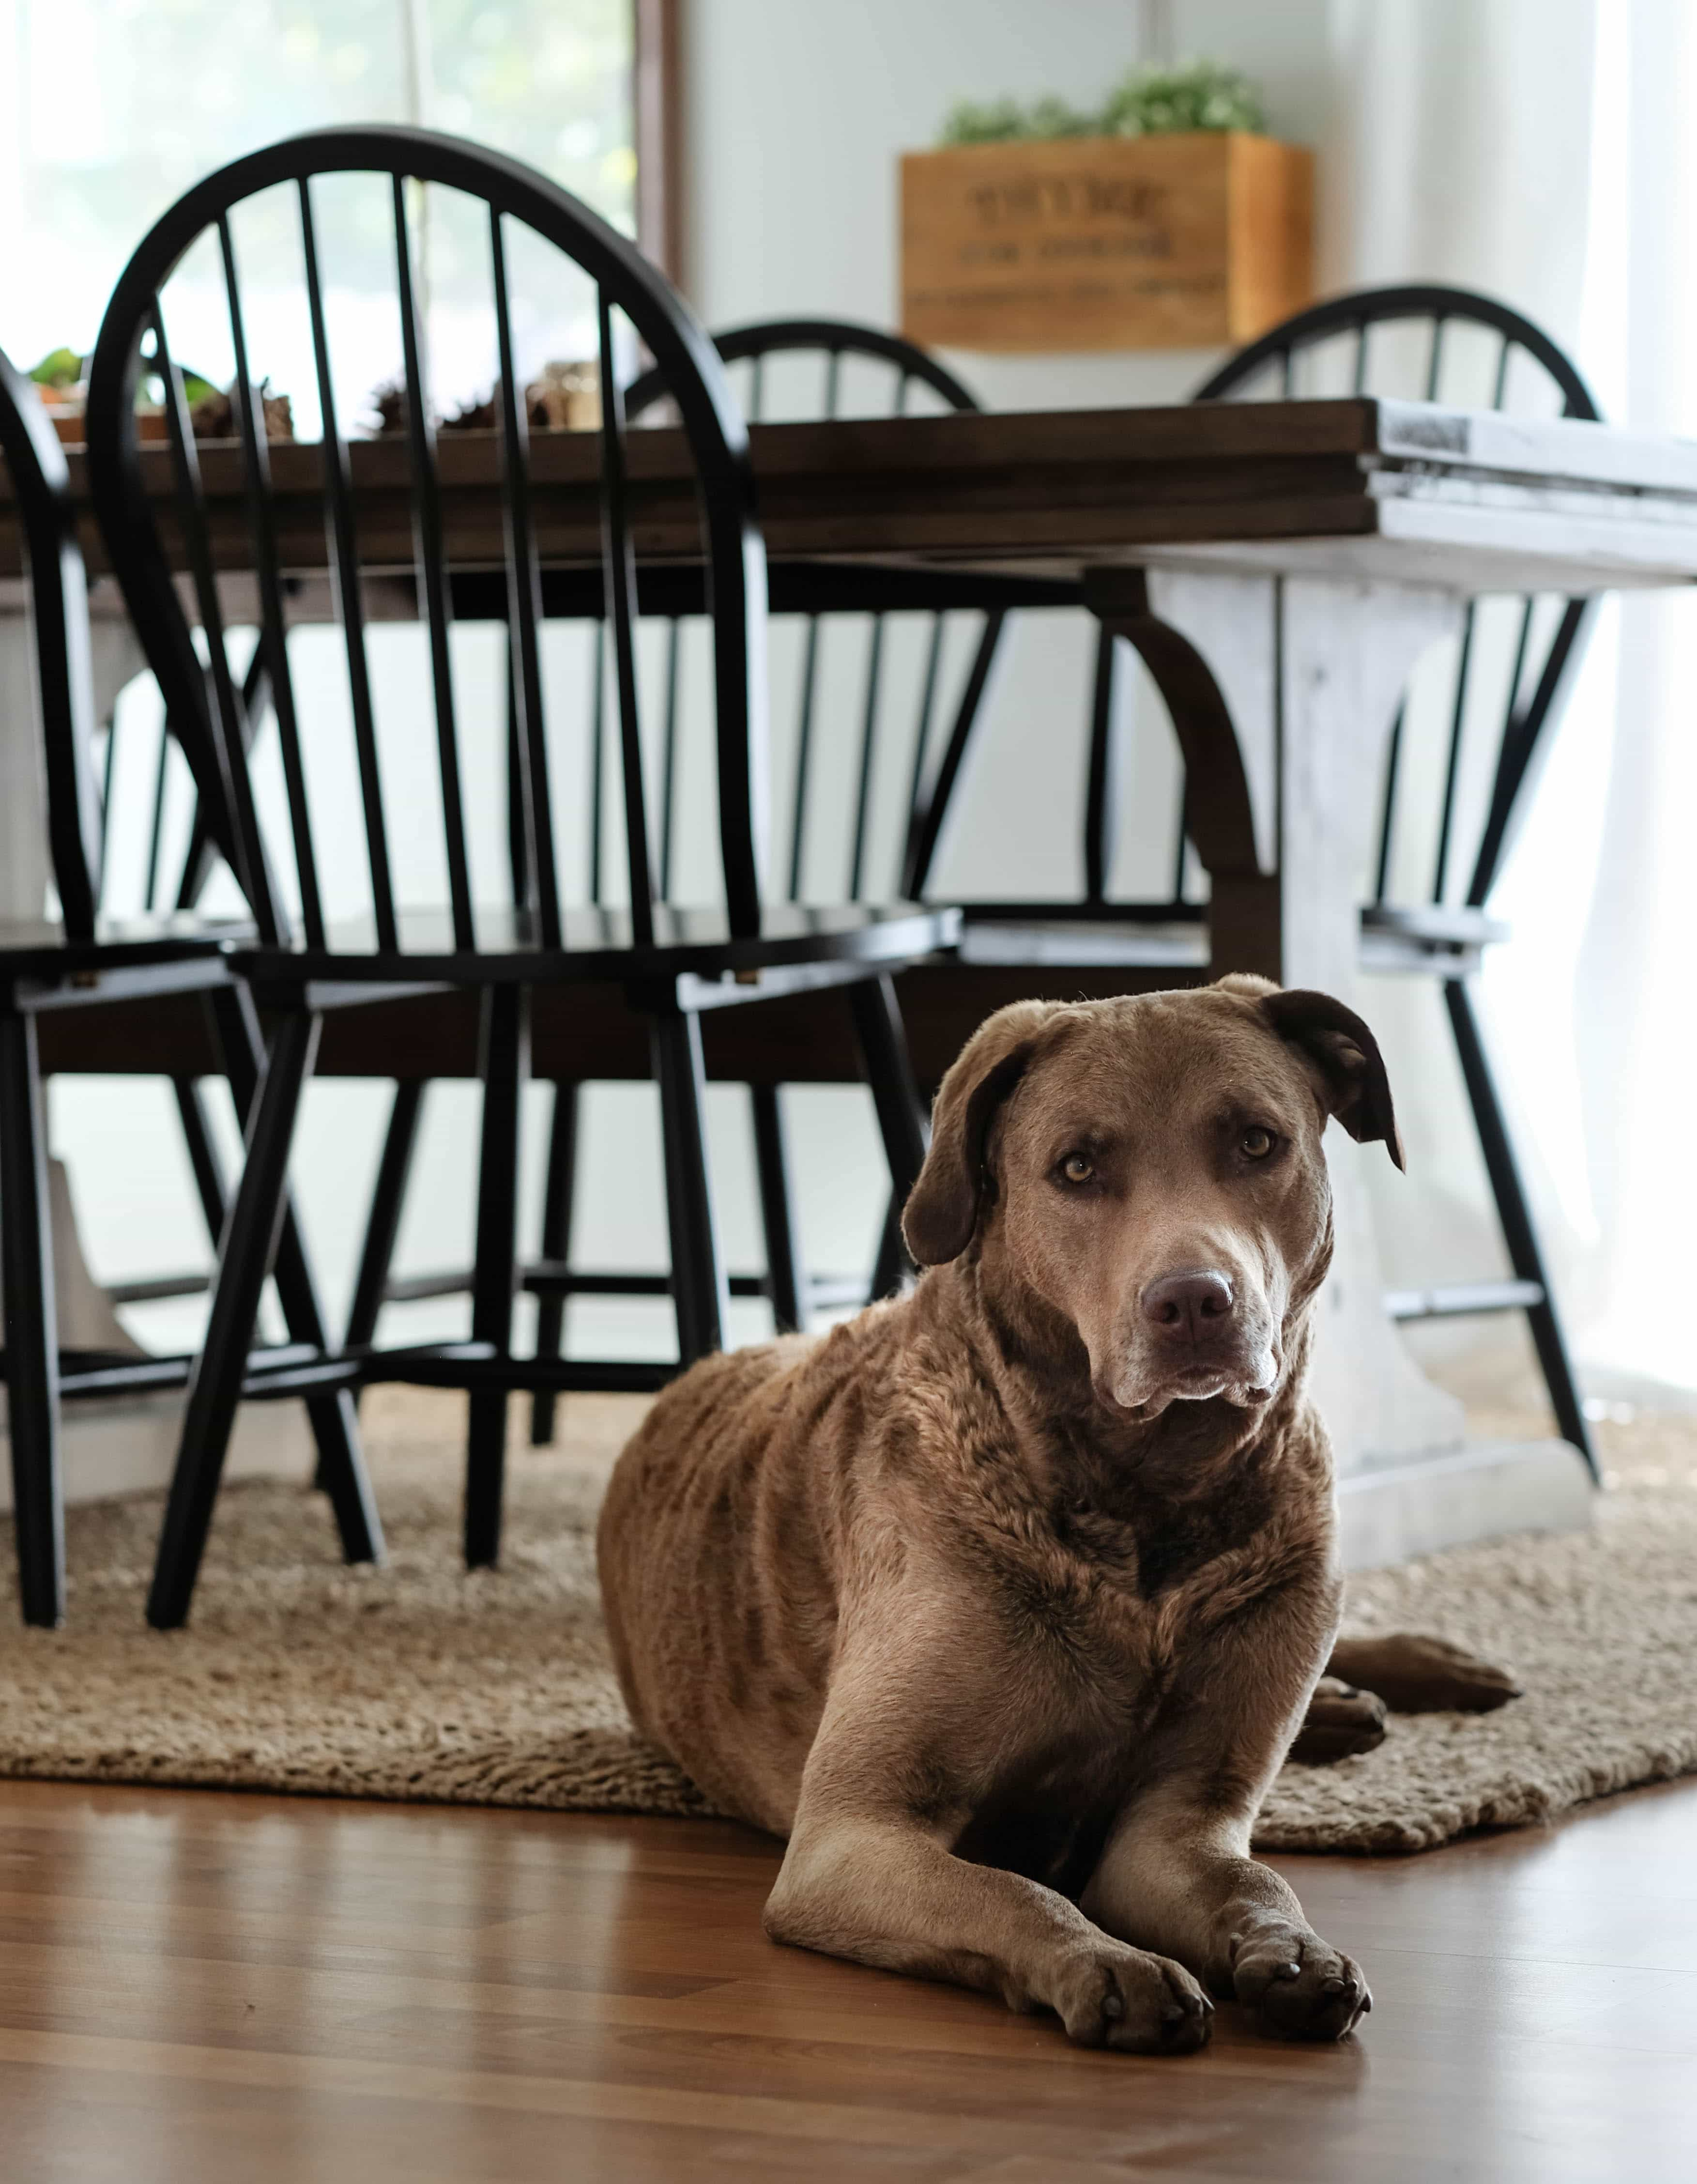 chesapeake bay retriever dog laying on jute rug